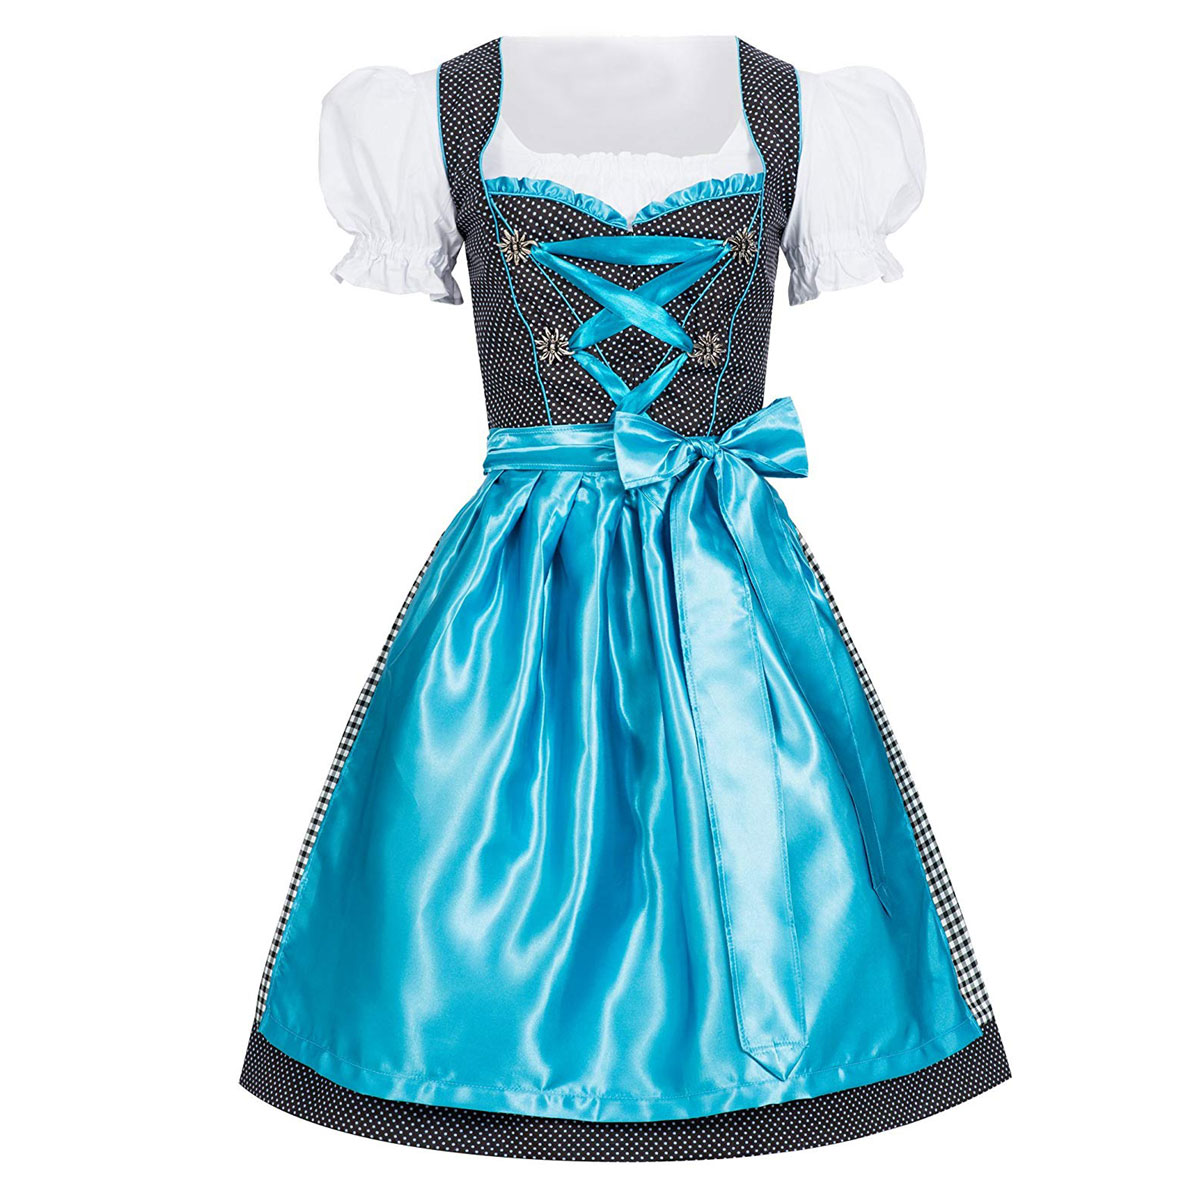 BLACK / WHITE WITH BLUE DIRNDL